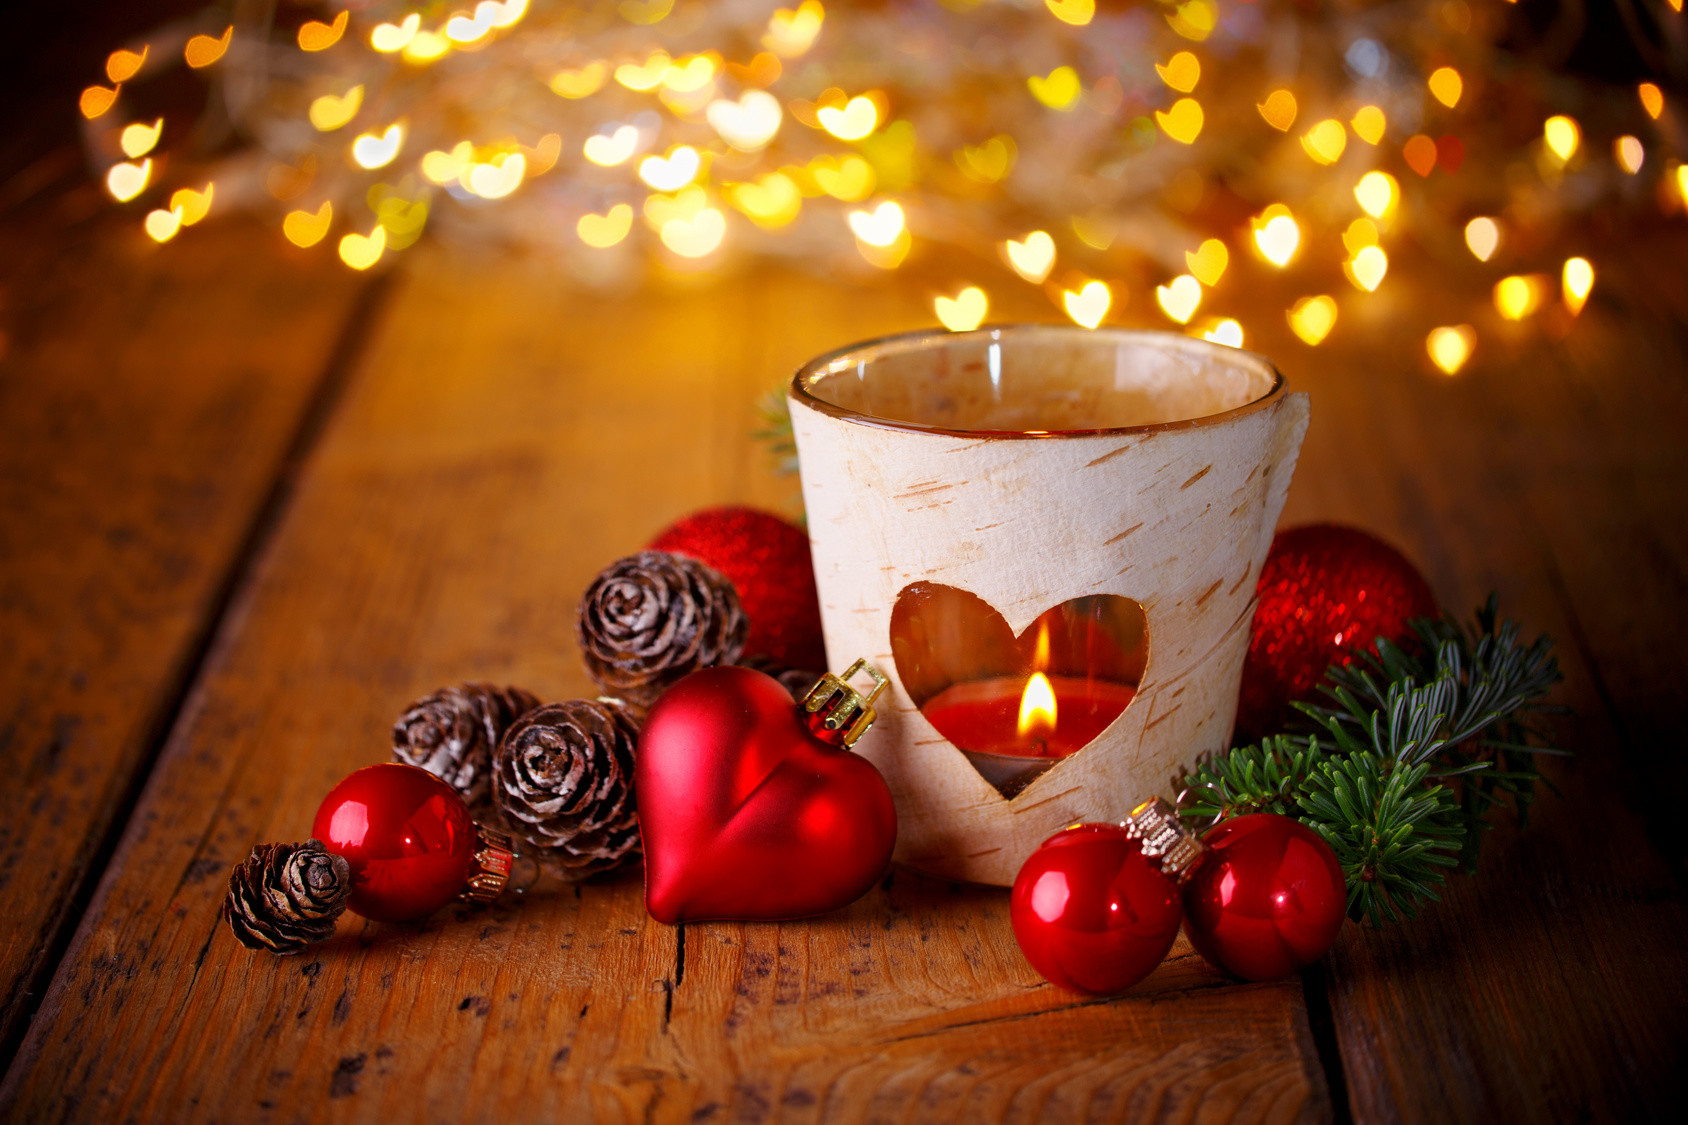 Christmas background -- Decoration with burning candle and heart shaped lights on wood